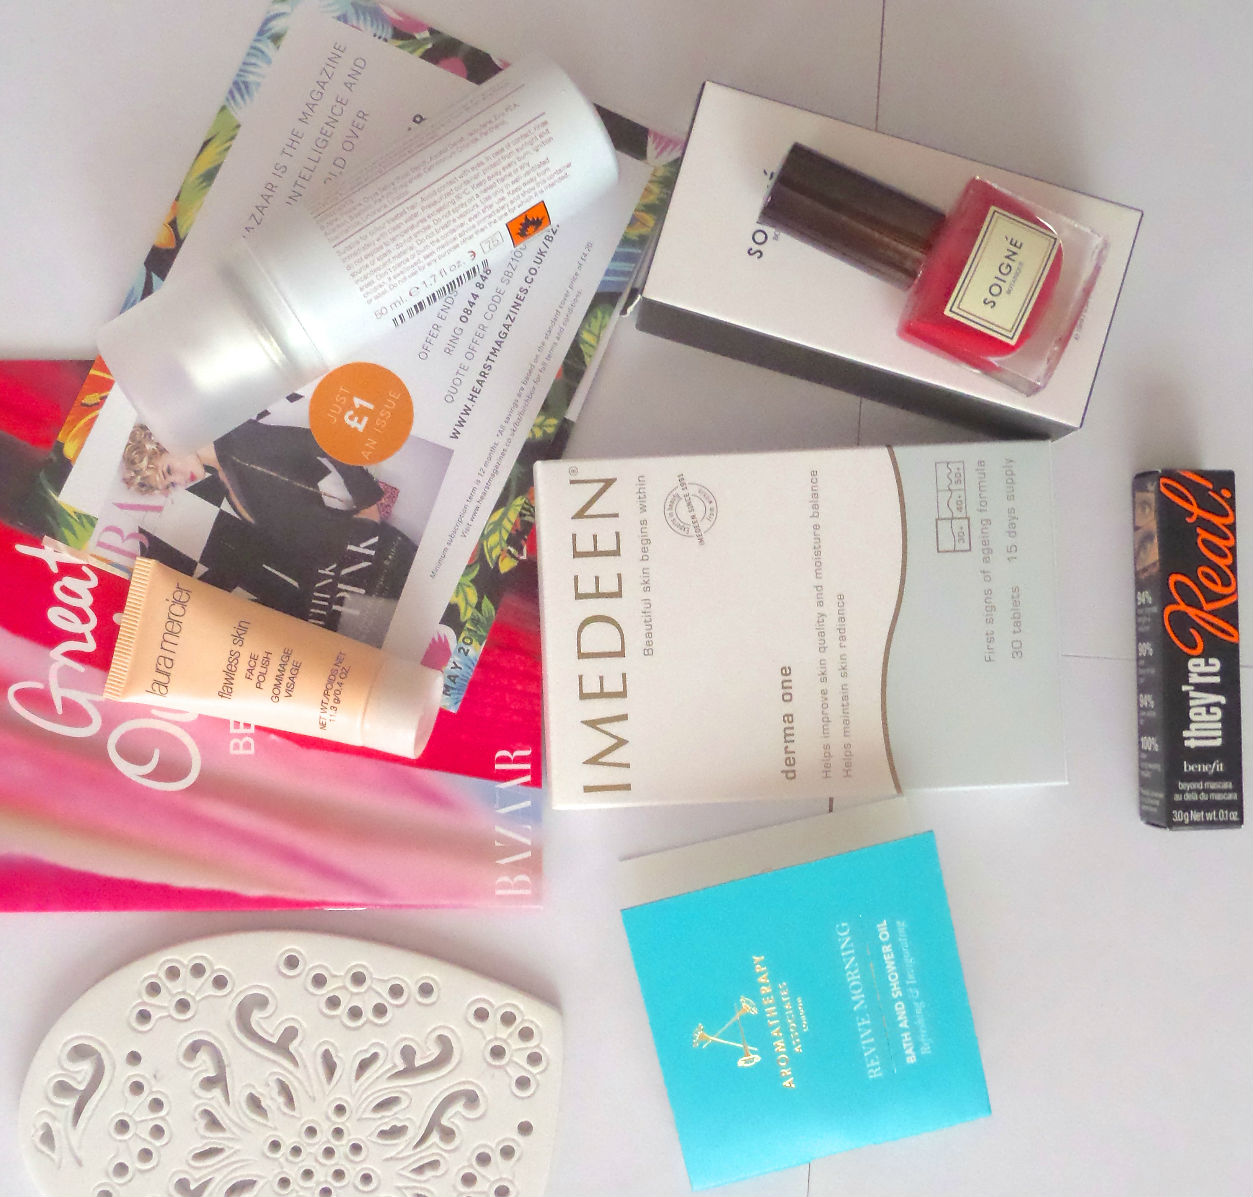 Birchbox May 2014 with Harper's Bazaar